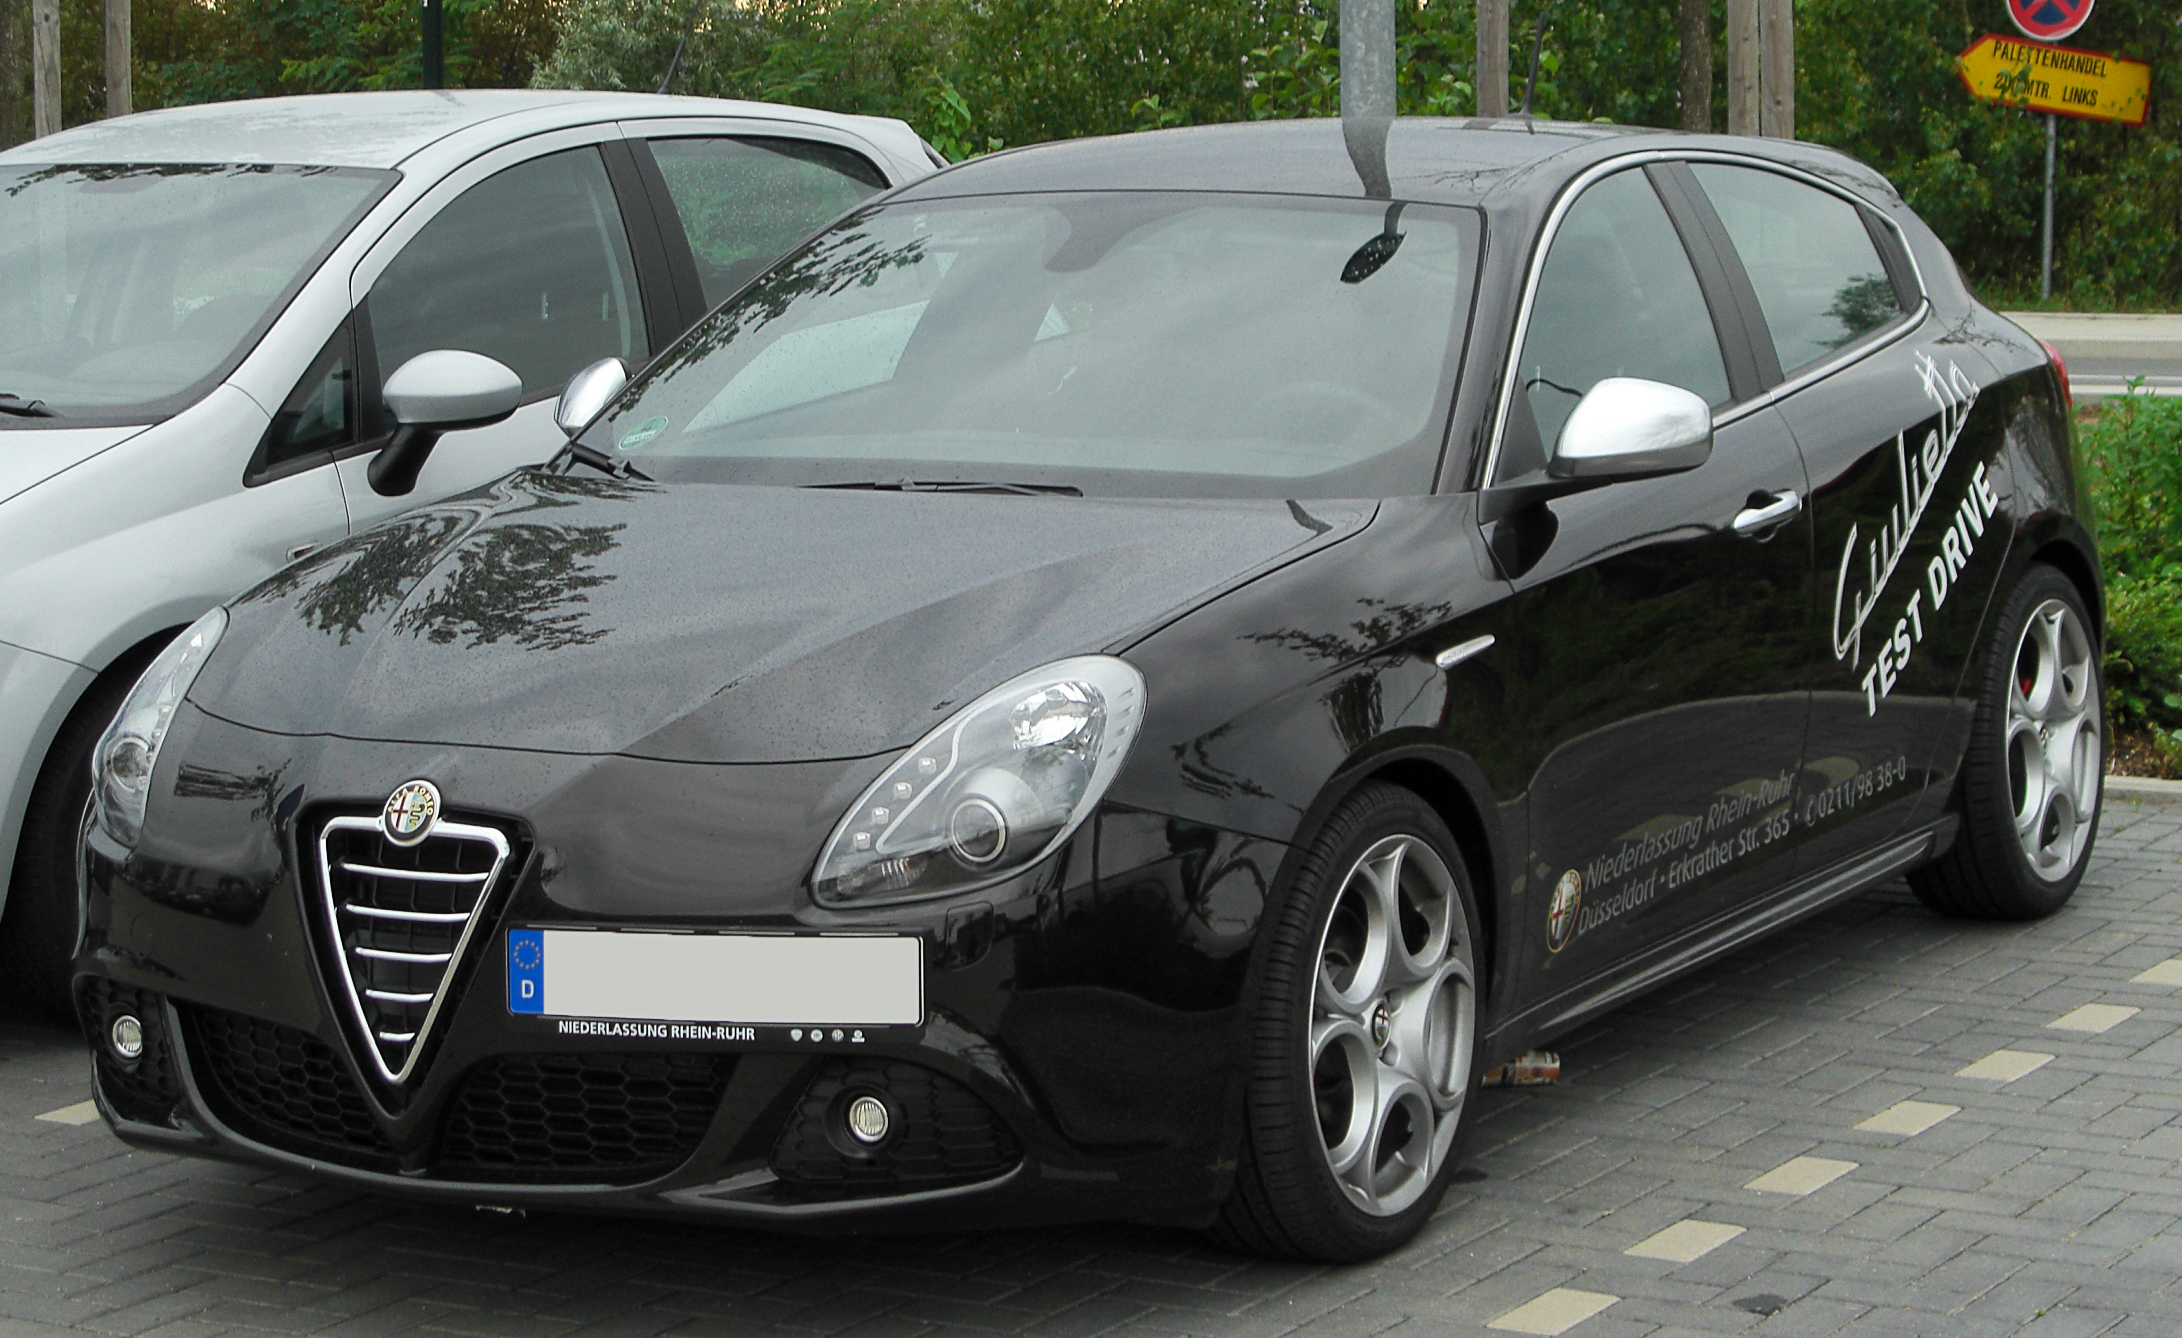 ALFA ROMEO GIULIETTA Review and photos